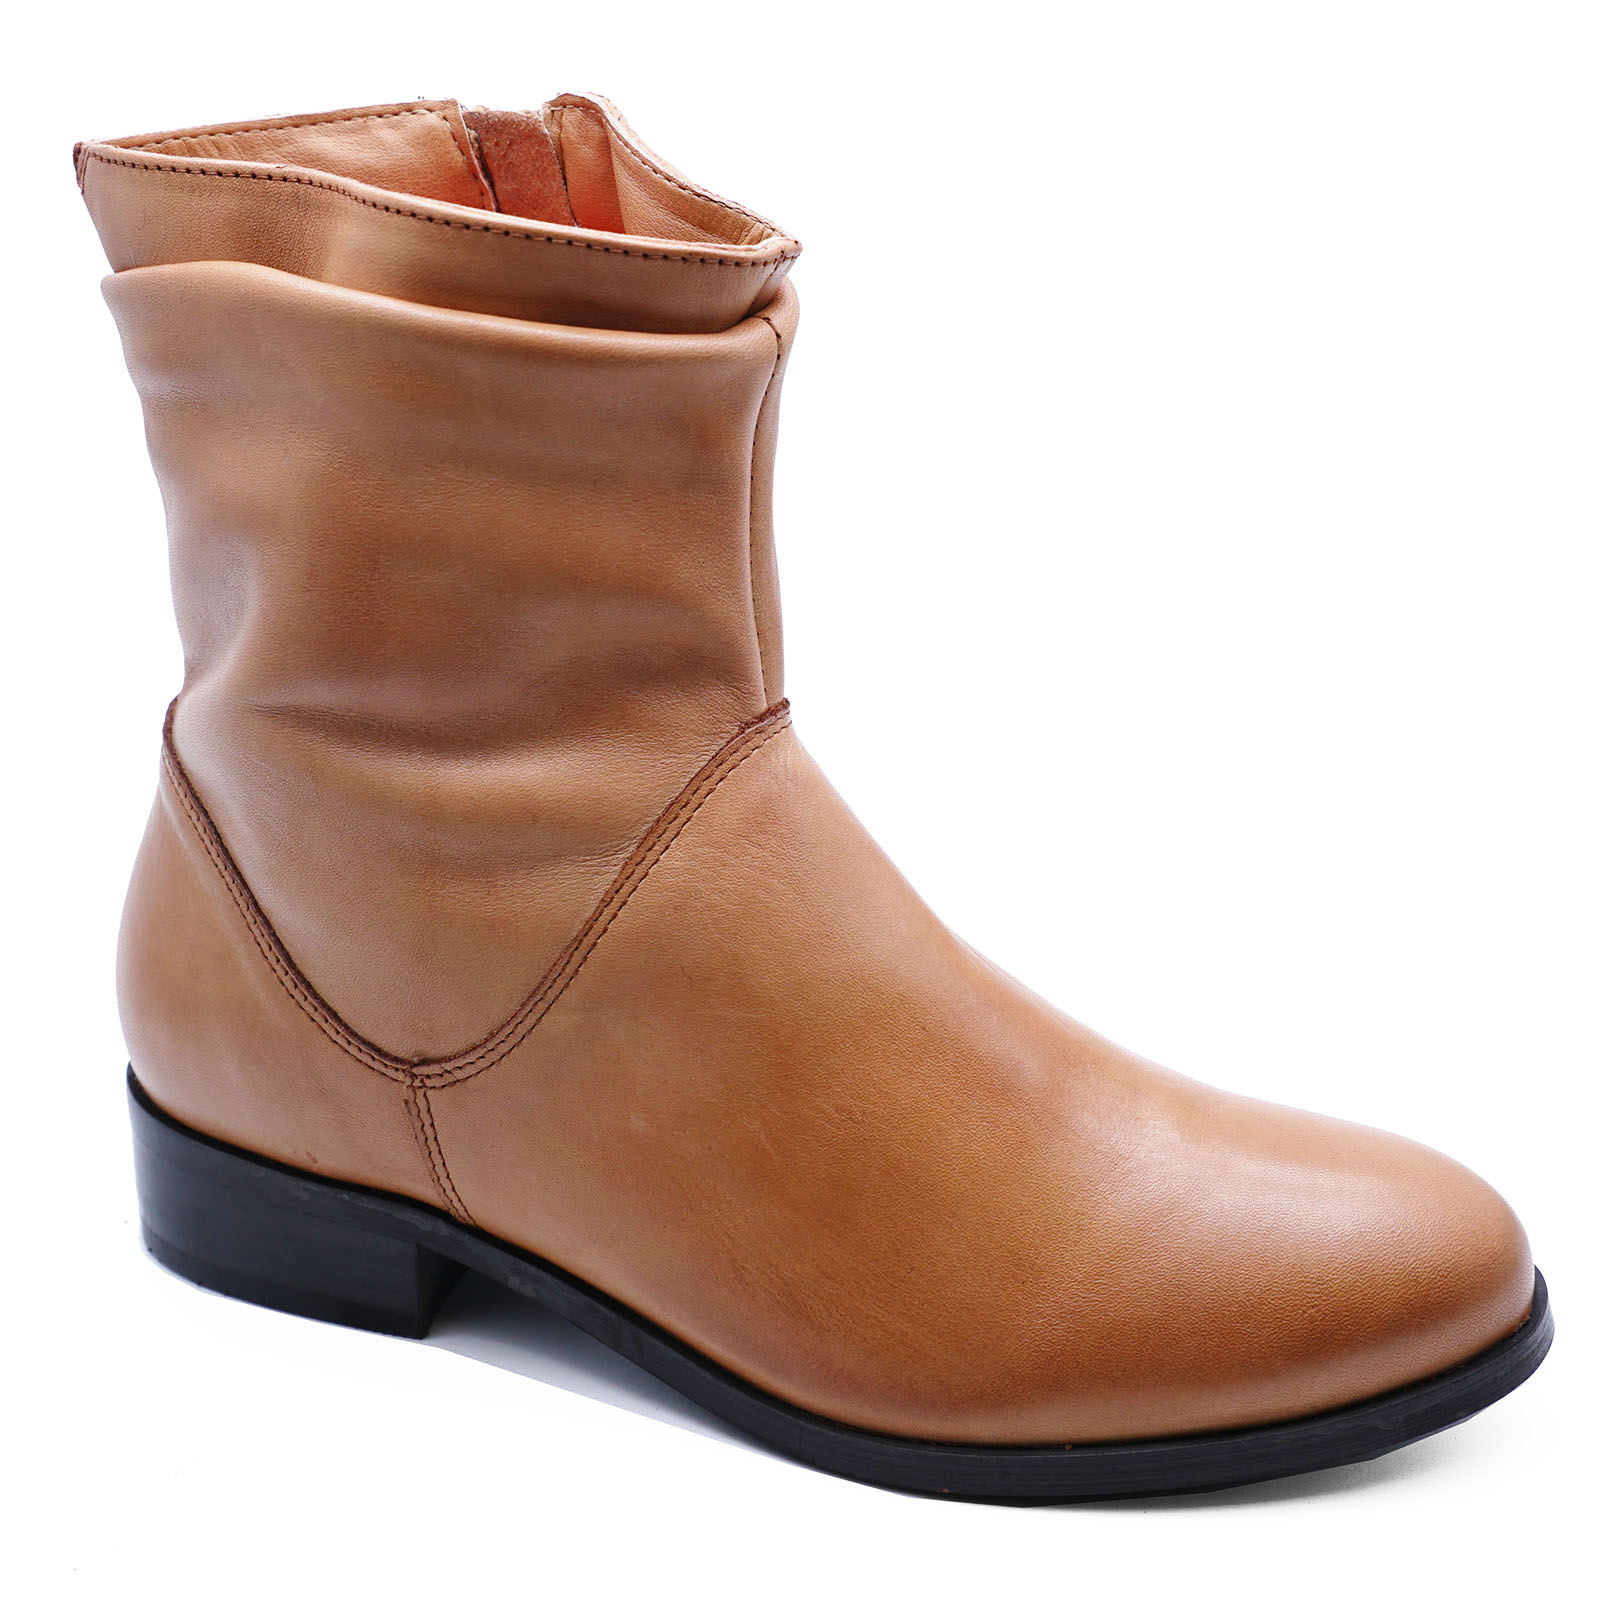 LADIES-FLAT-GENUINE-LEATHER-TAN-ZIP-UP-ANKLE-CALF-BOOTS-COMFY-SHOES-SIZES-2-9 thumbnail 42